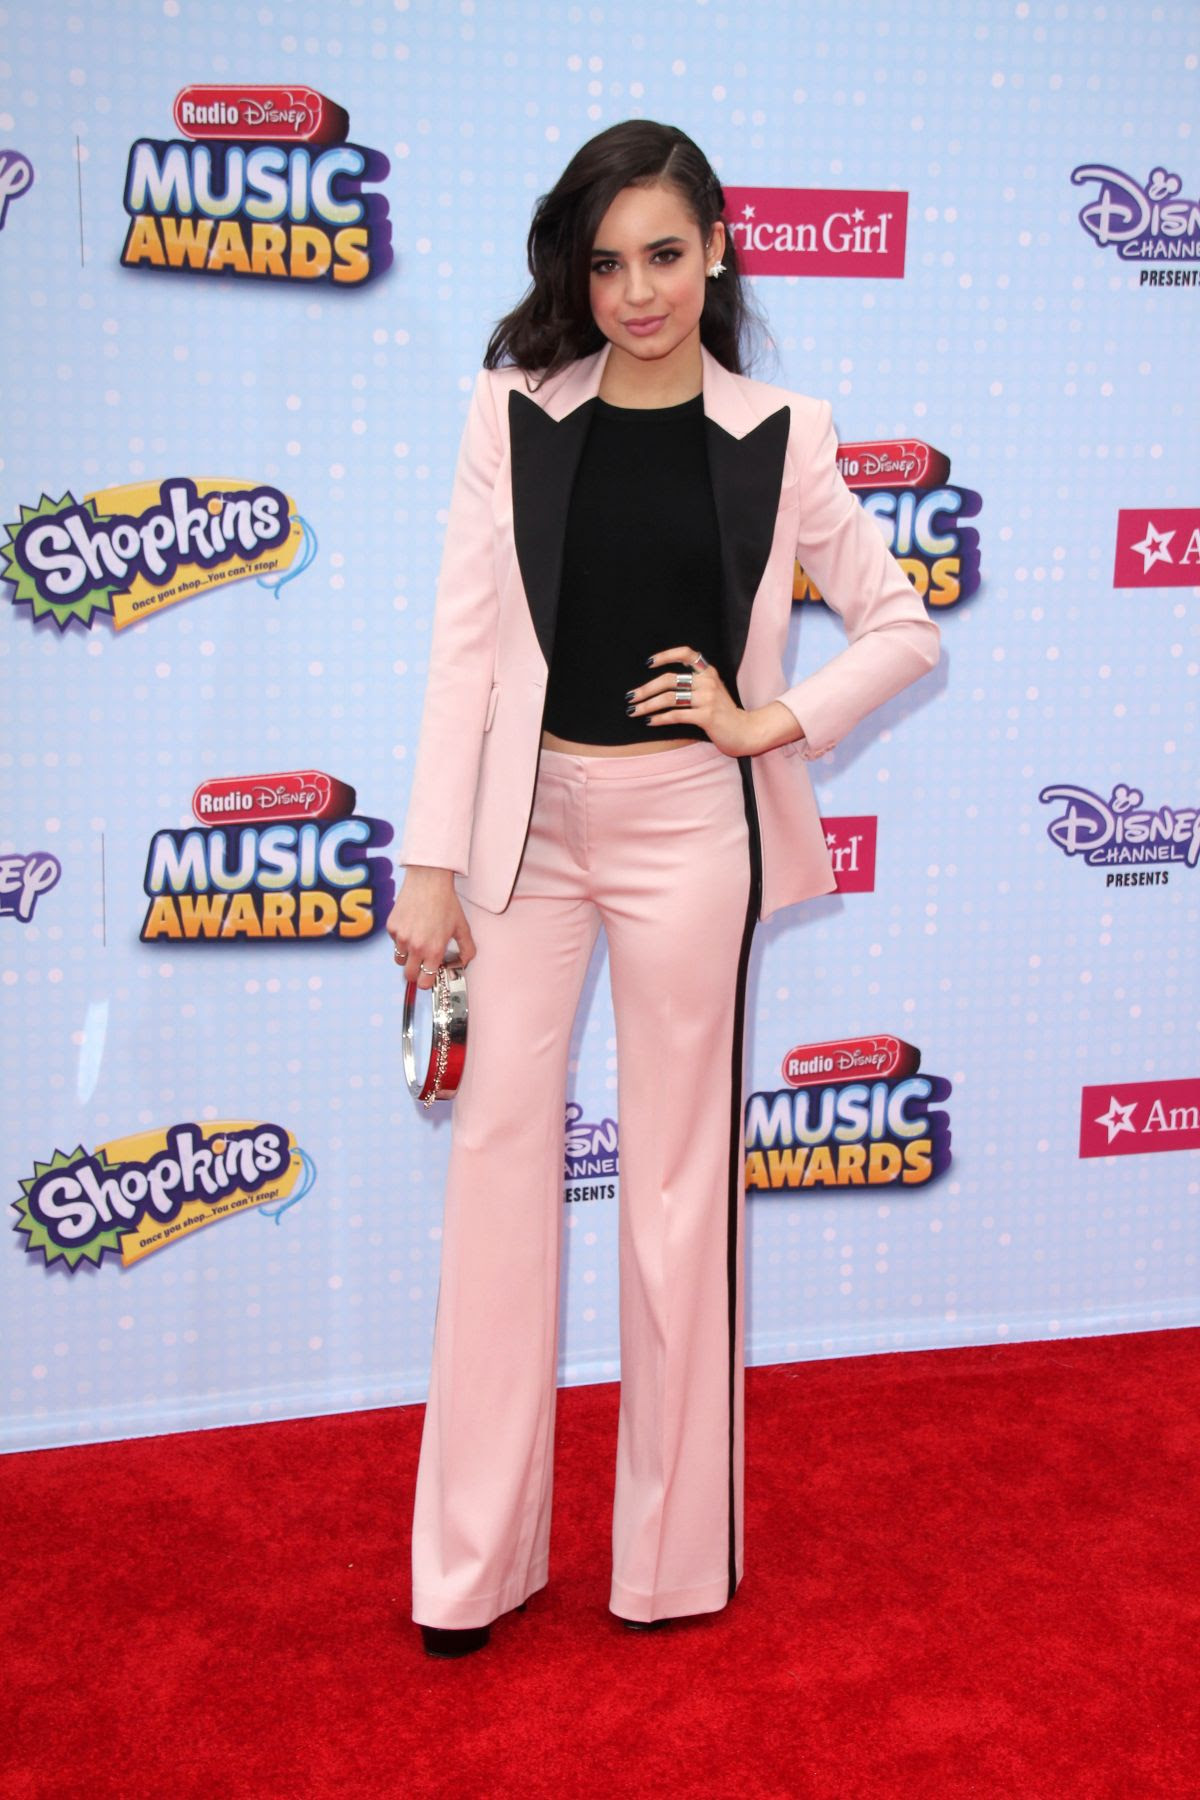 SOFIA CARSON at 2015 Radio Disney Music Awards in Los Angeles